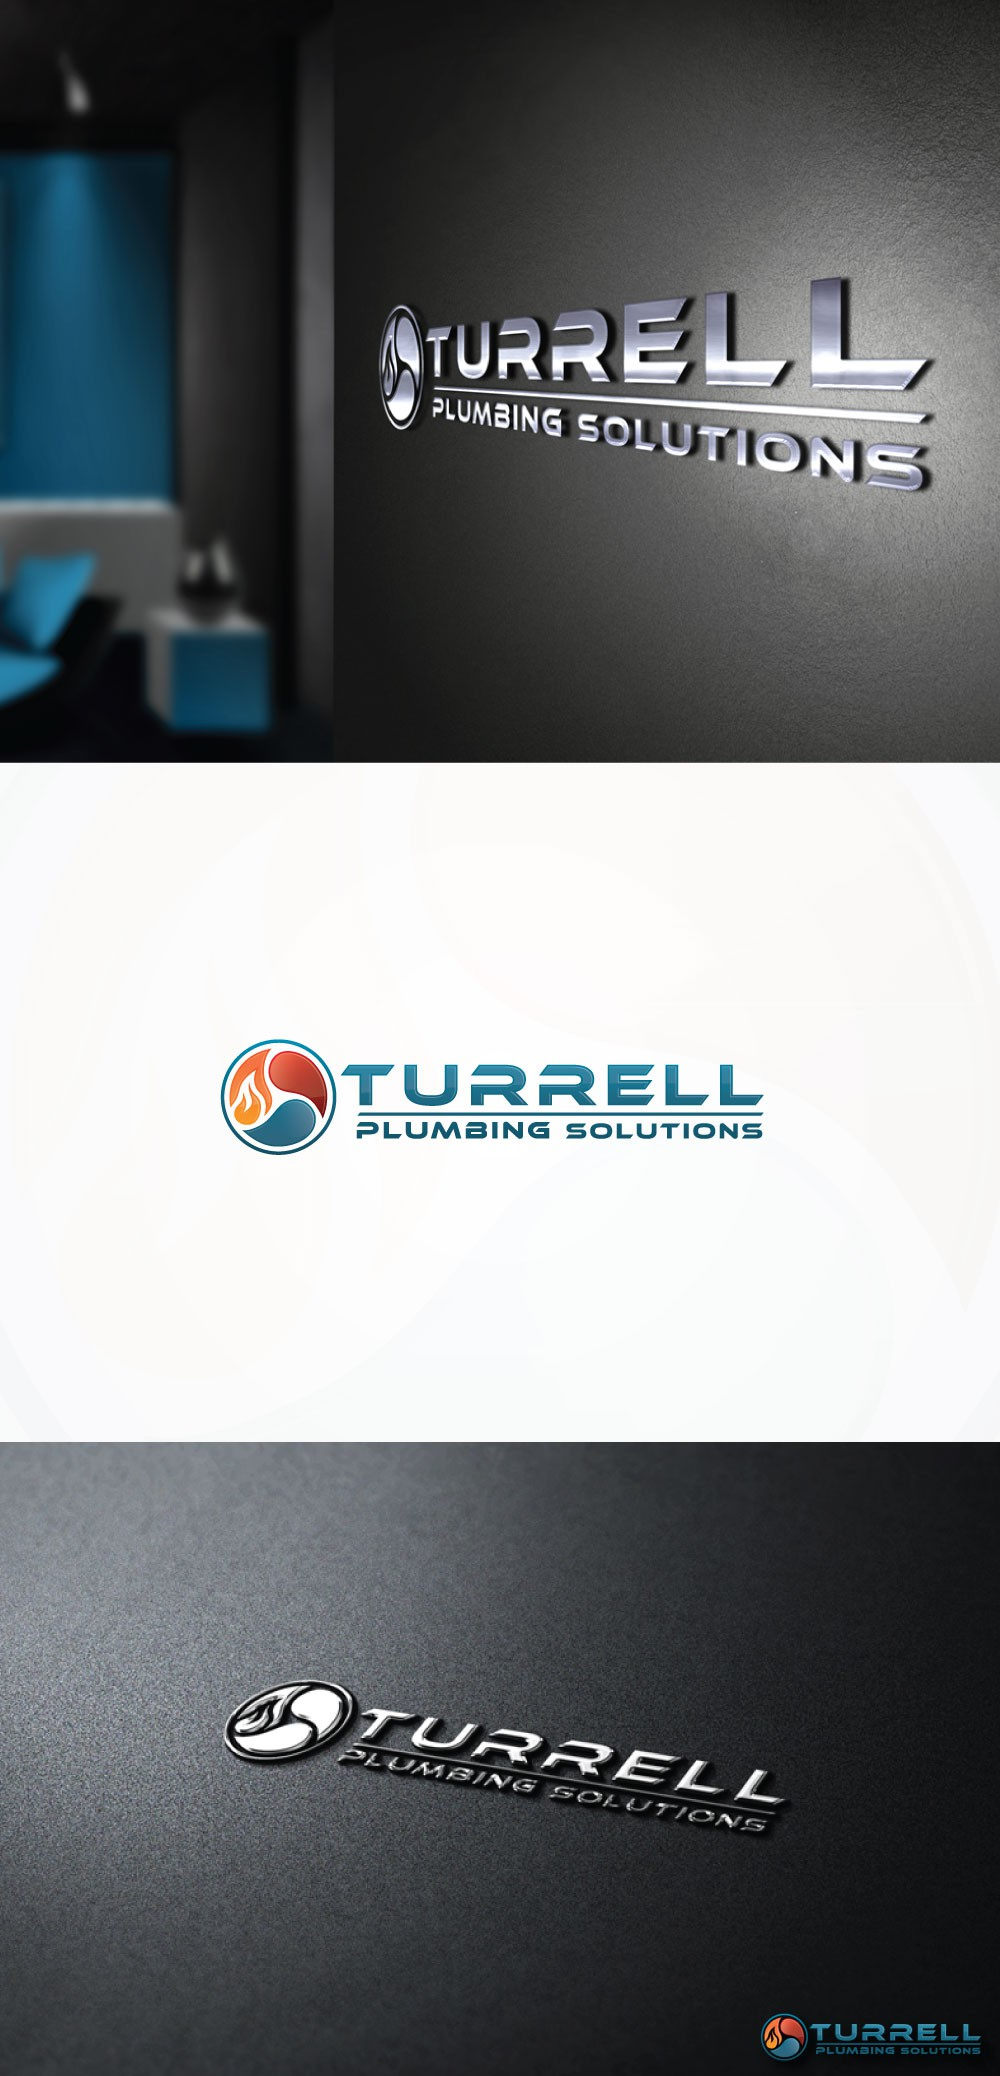 Can you create a logo and website that will differentiate this new plumbing company from the rest?